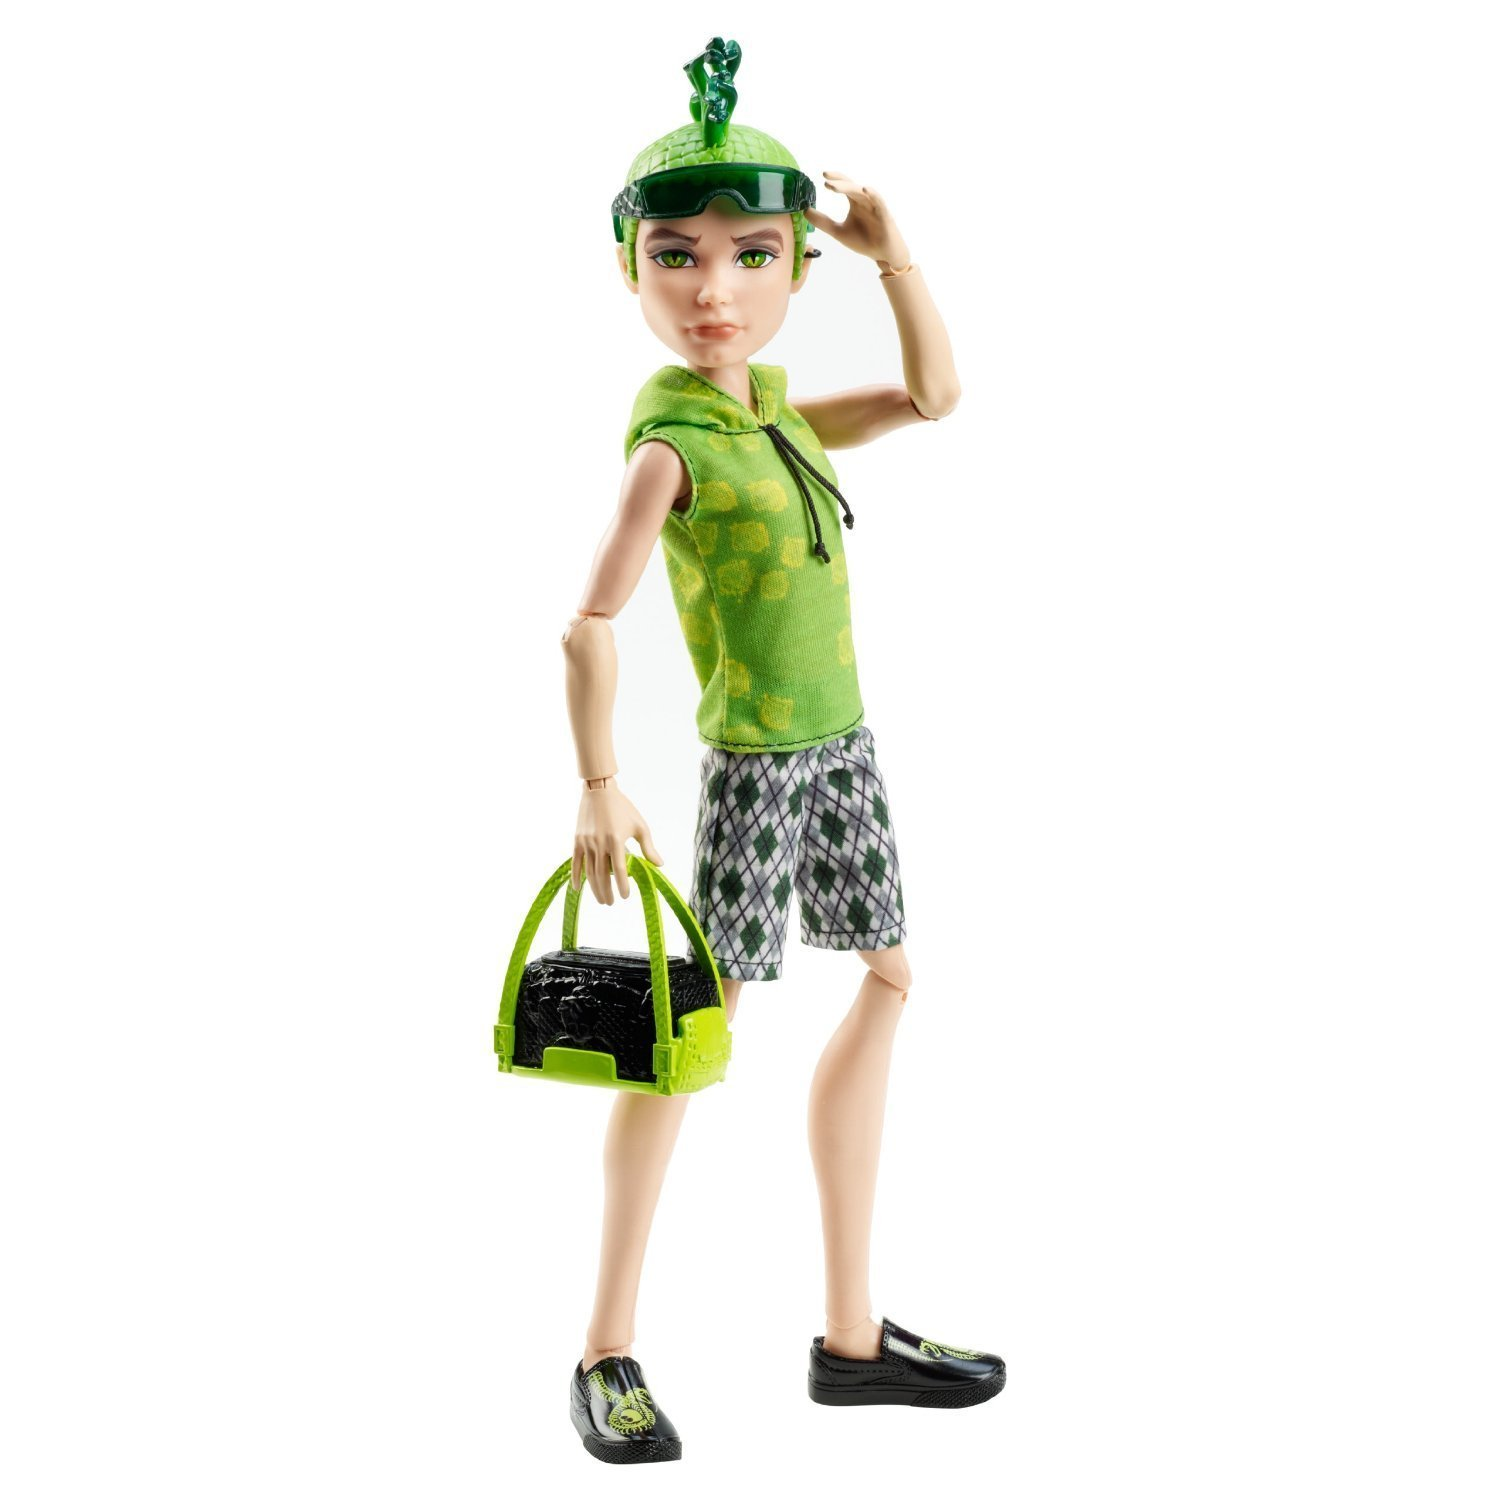 Scaris Deuce Gorgon Doll, The ghouls of Monster High are ...